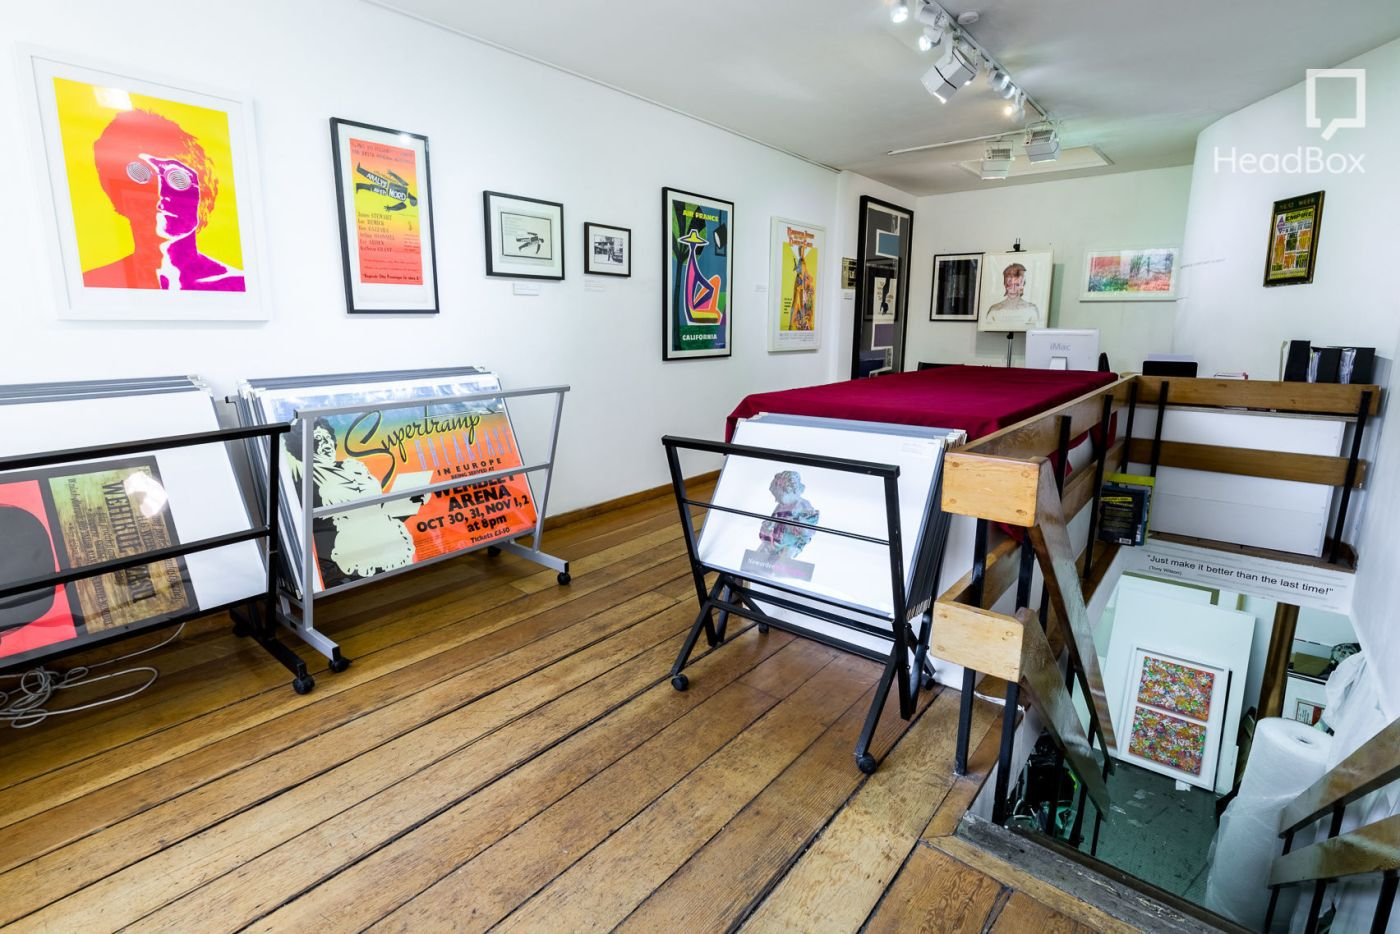 A movie poster art gallery in Fitzrovia